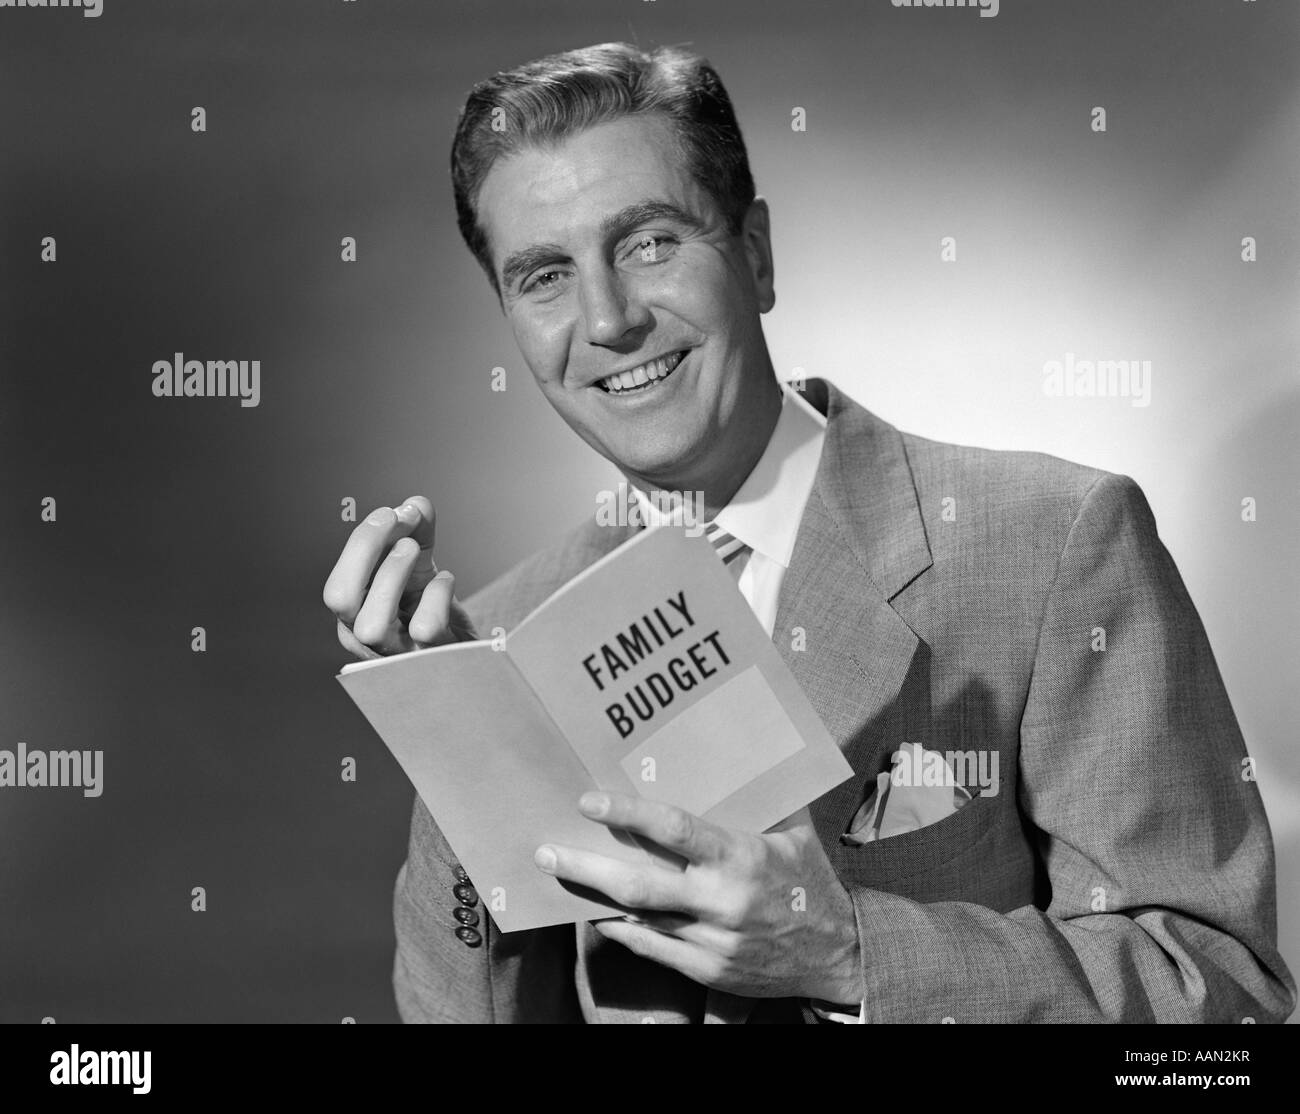 1950s SMILING MAN IN SUIT HOLDING FAMILY BUDGET BOOKLET LOOKING AT CAMERA - Stock Image